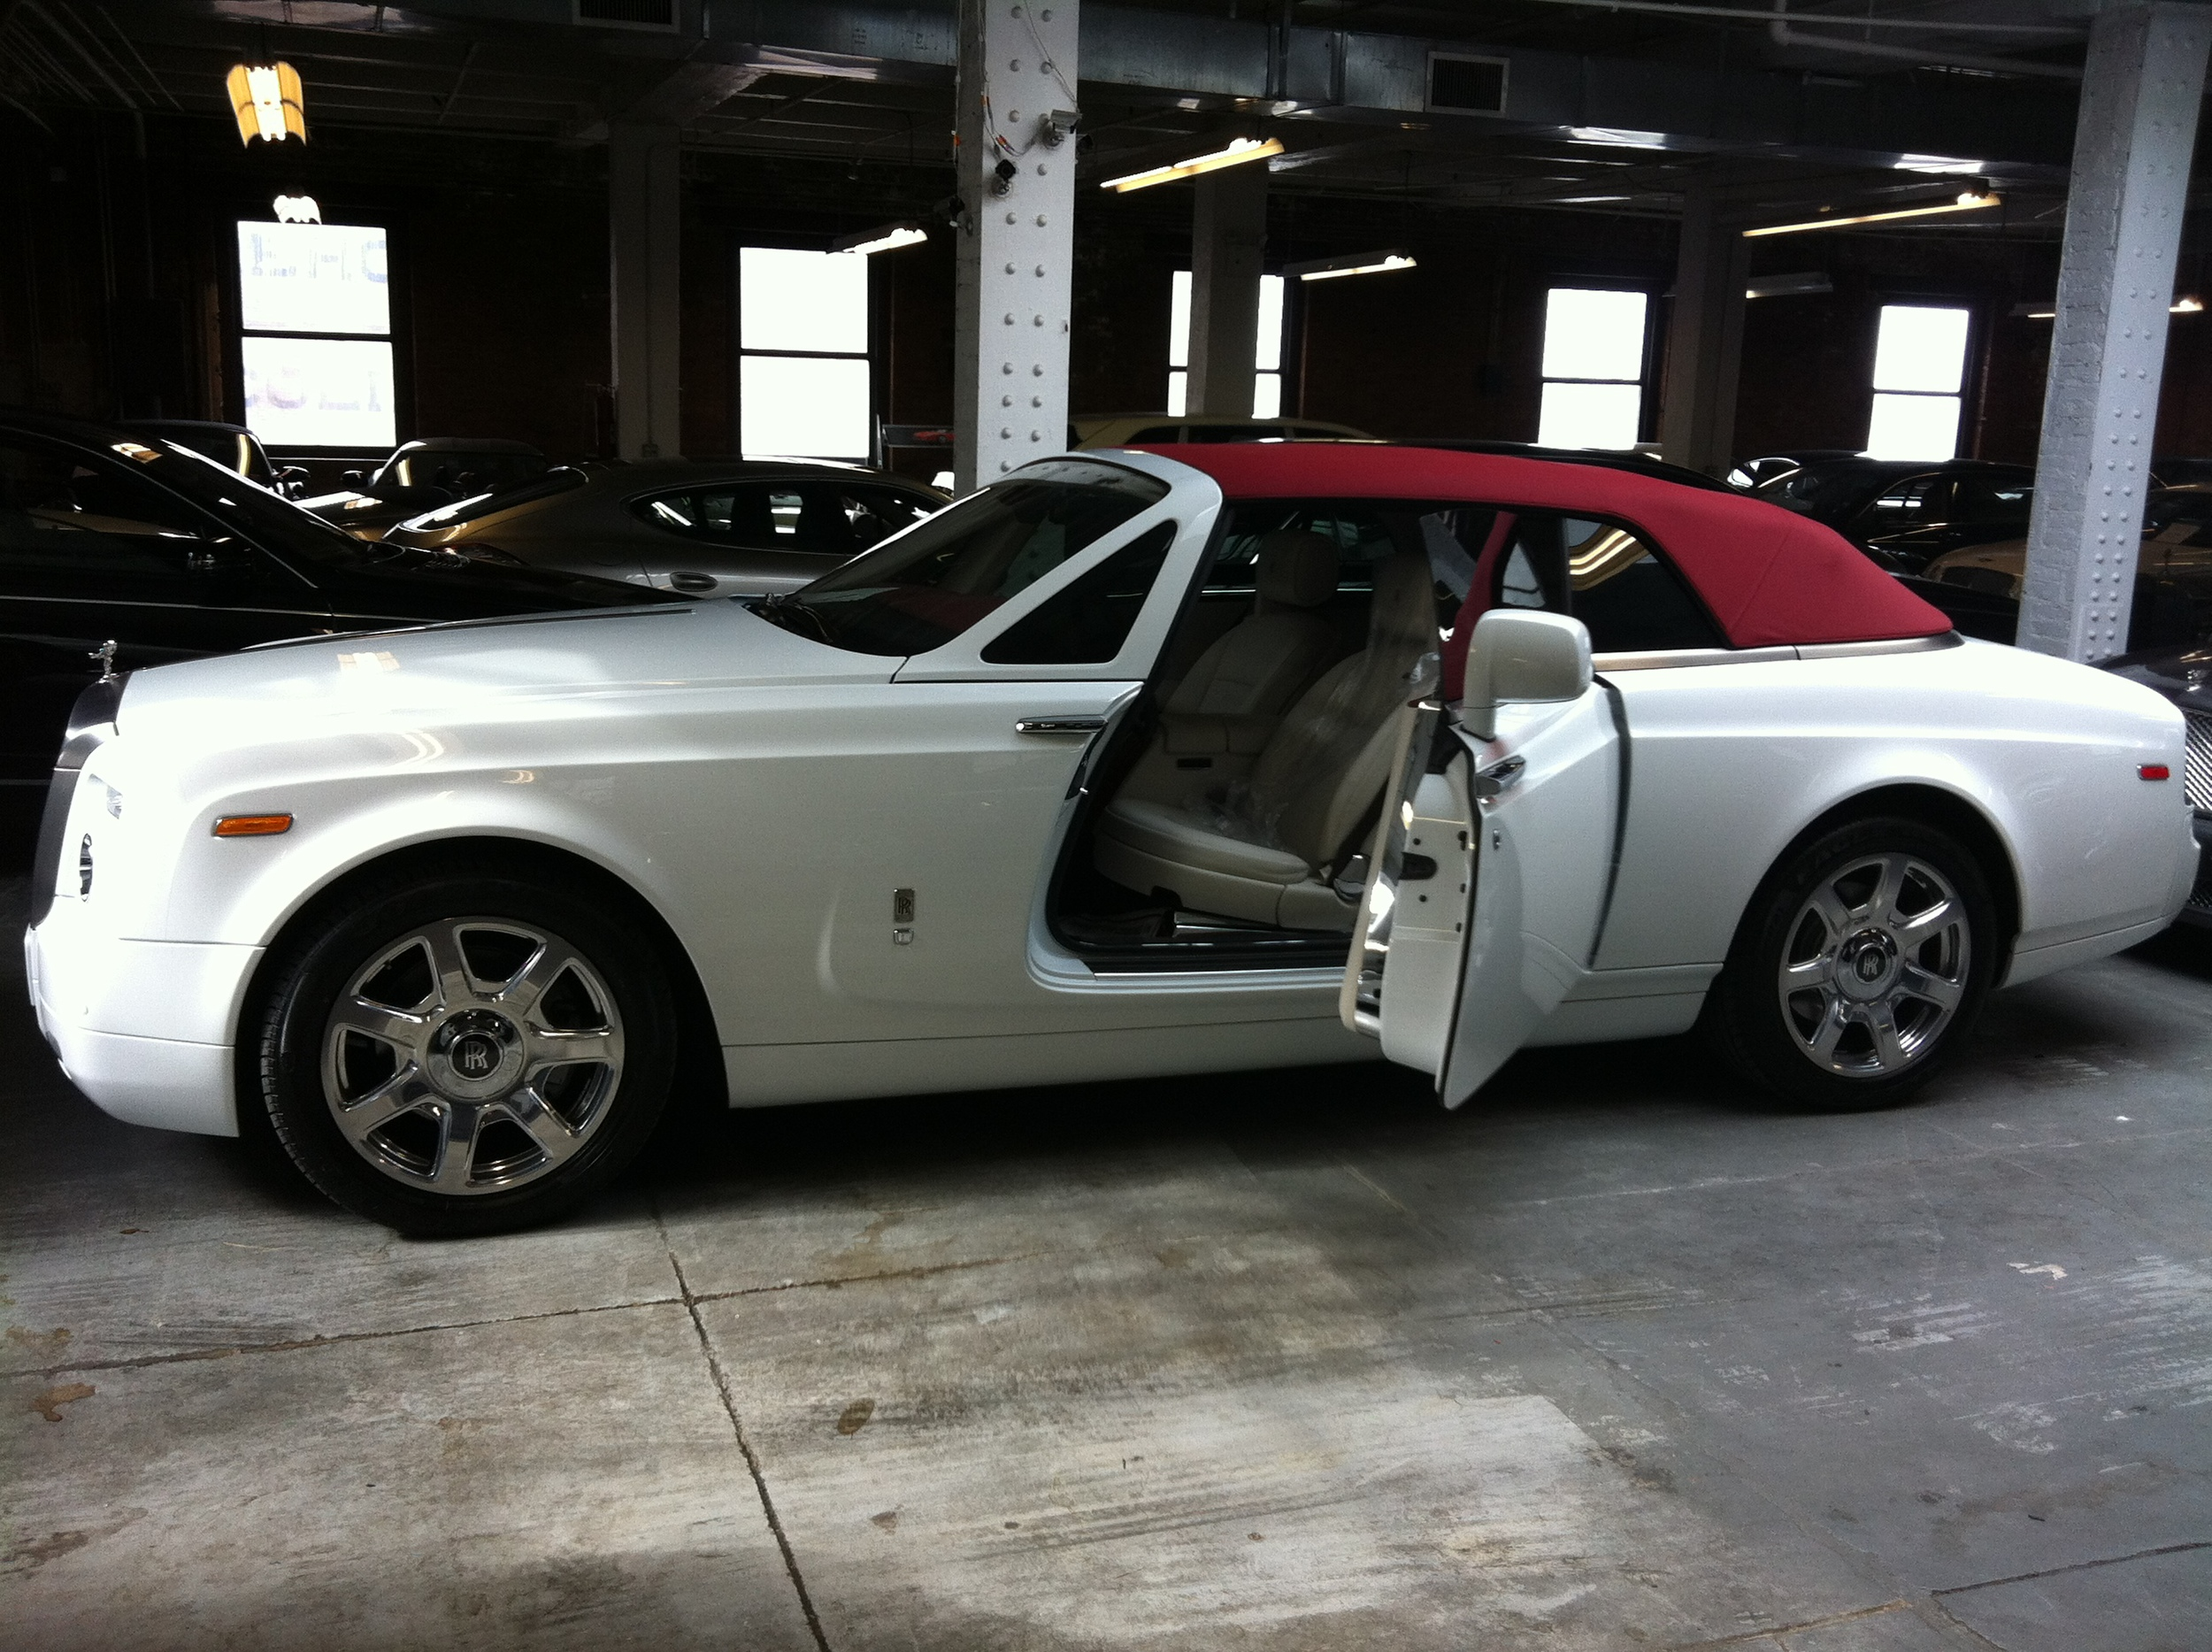 2013 Rolls Royce DropHead Coupe.  This car worth $500k comes with suicide doors that close with a push of a button.